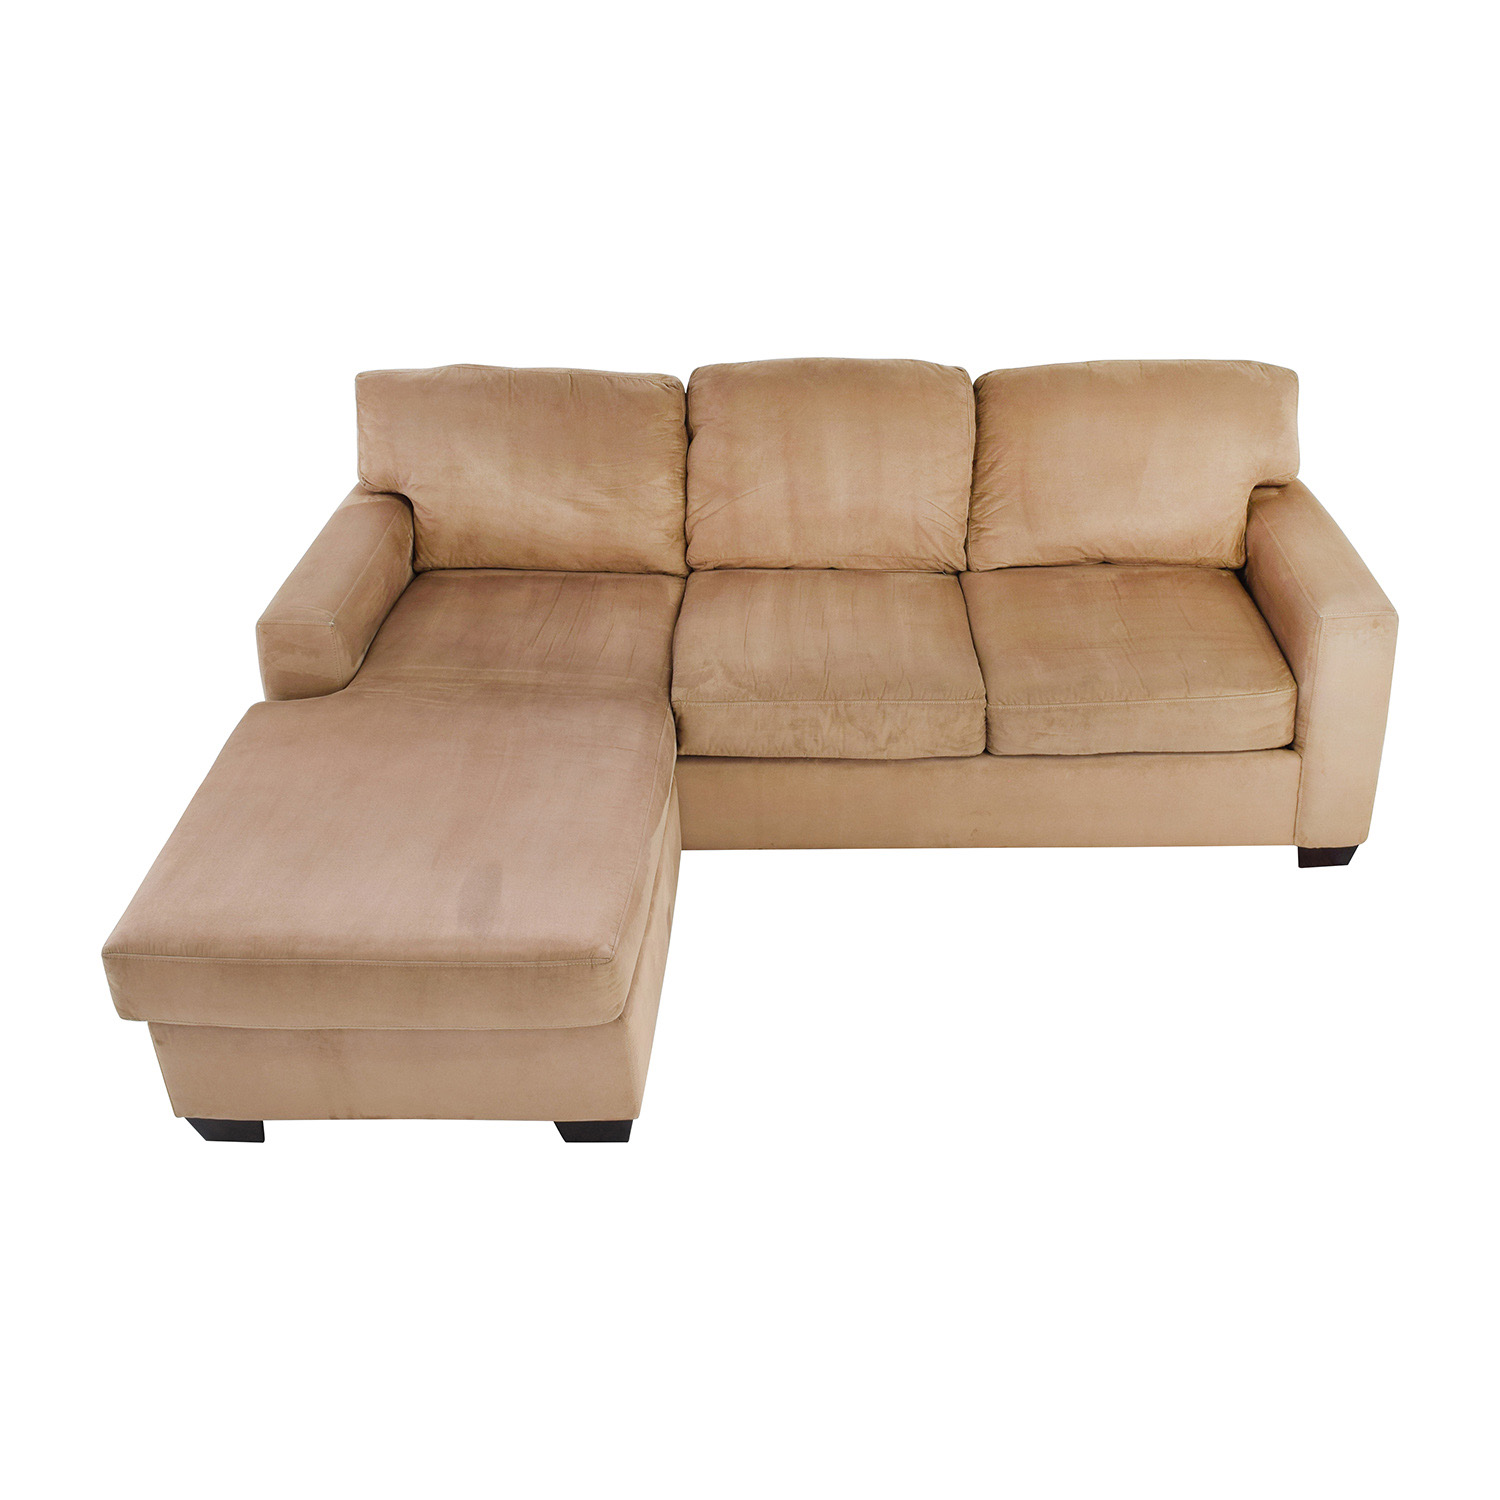 75 off max home max home tan sectional chaise sofa sofas for Chaise and sofa